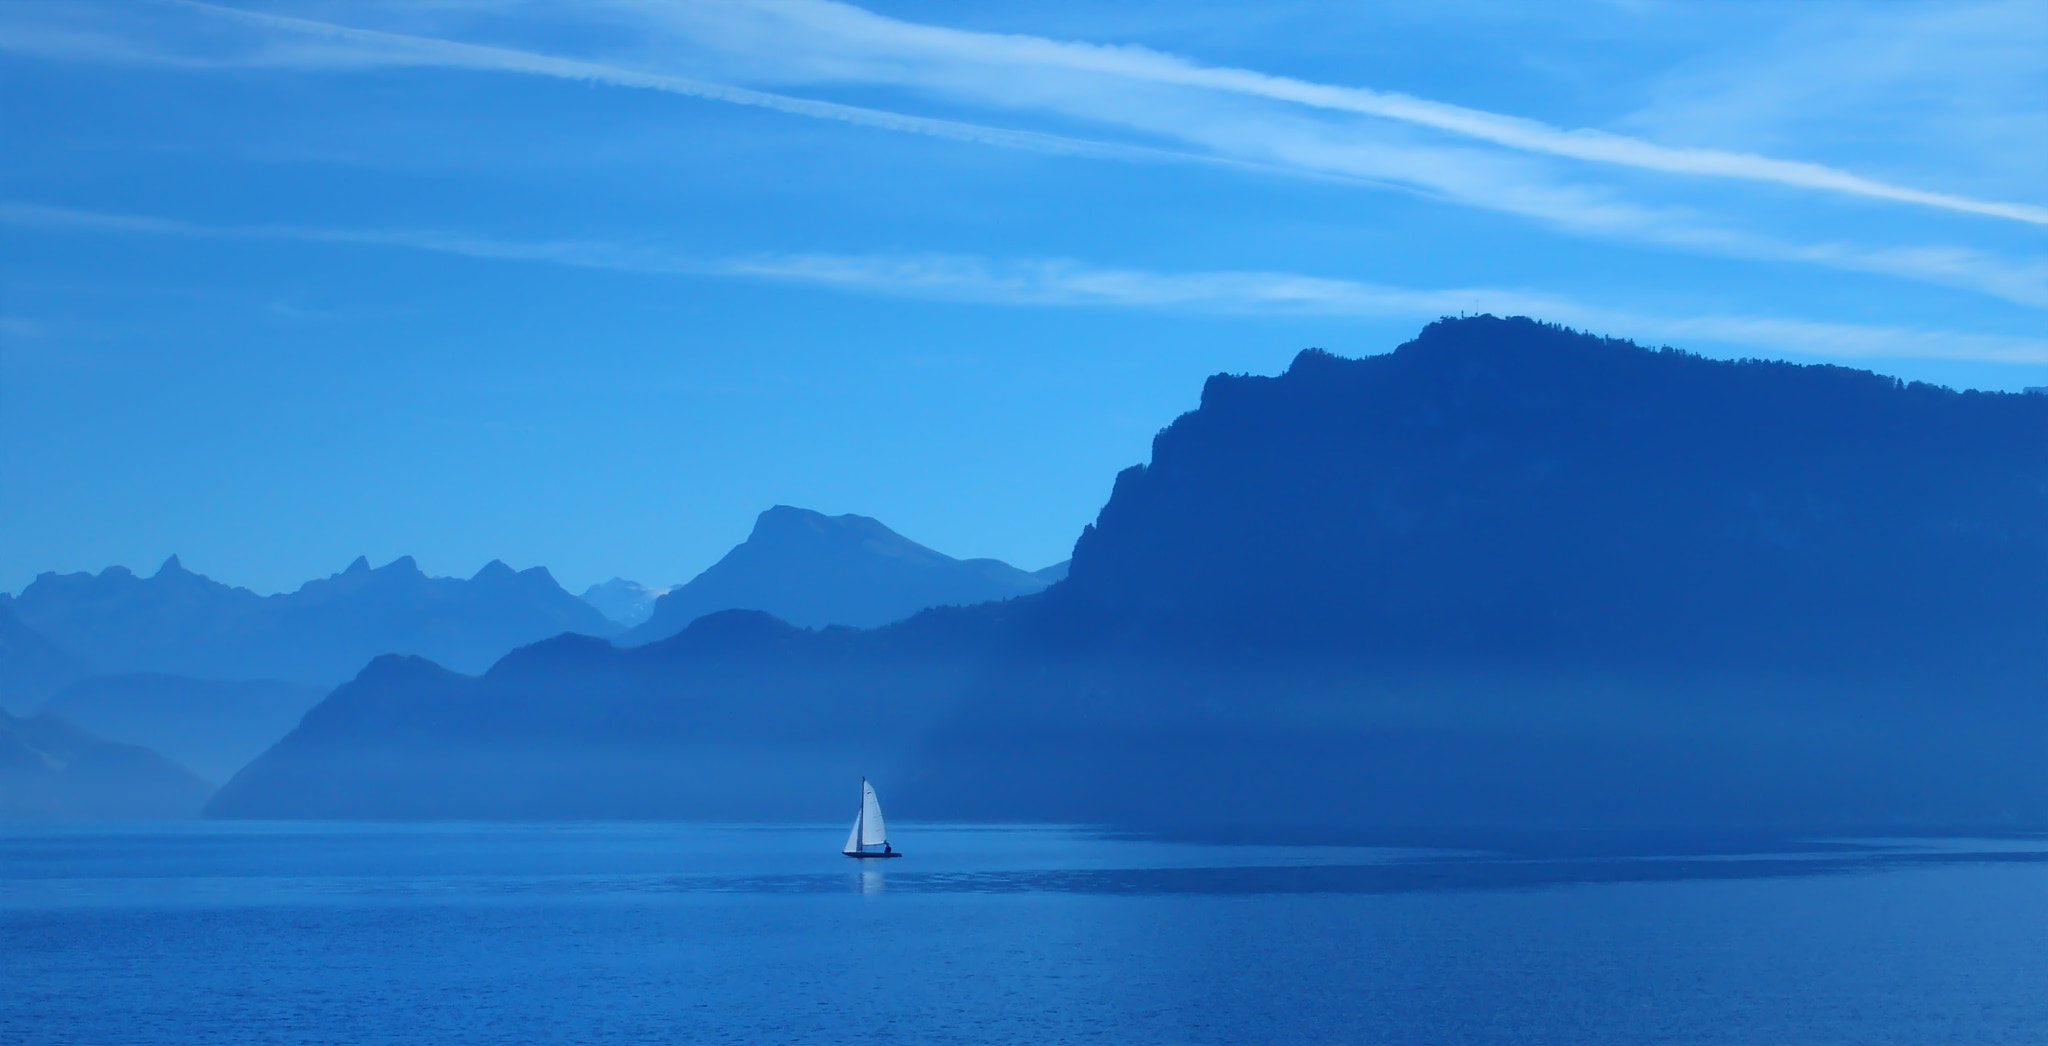 Photograph Lake Lucerne Bürgenstock by Jean-Pierre Perren on 500px